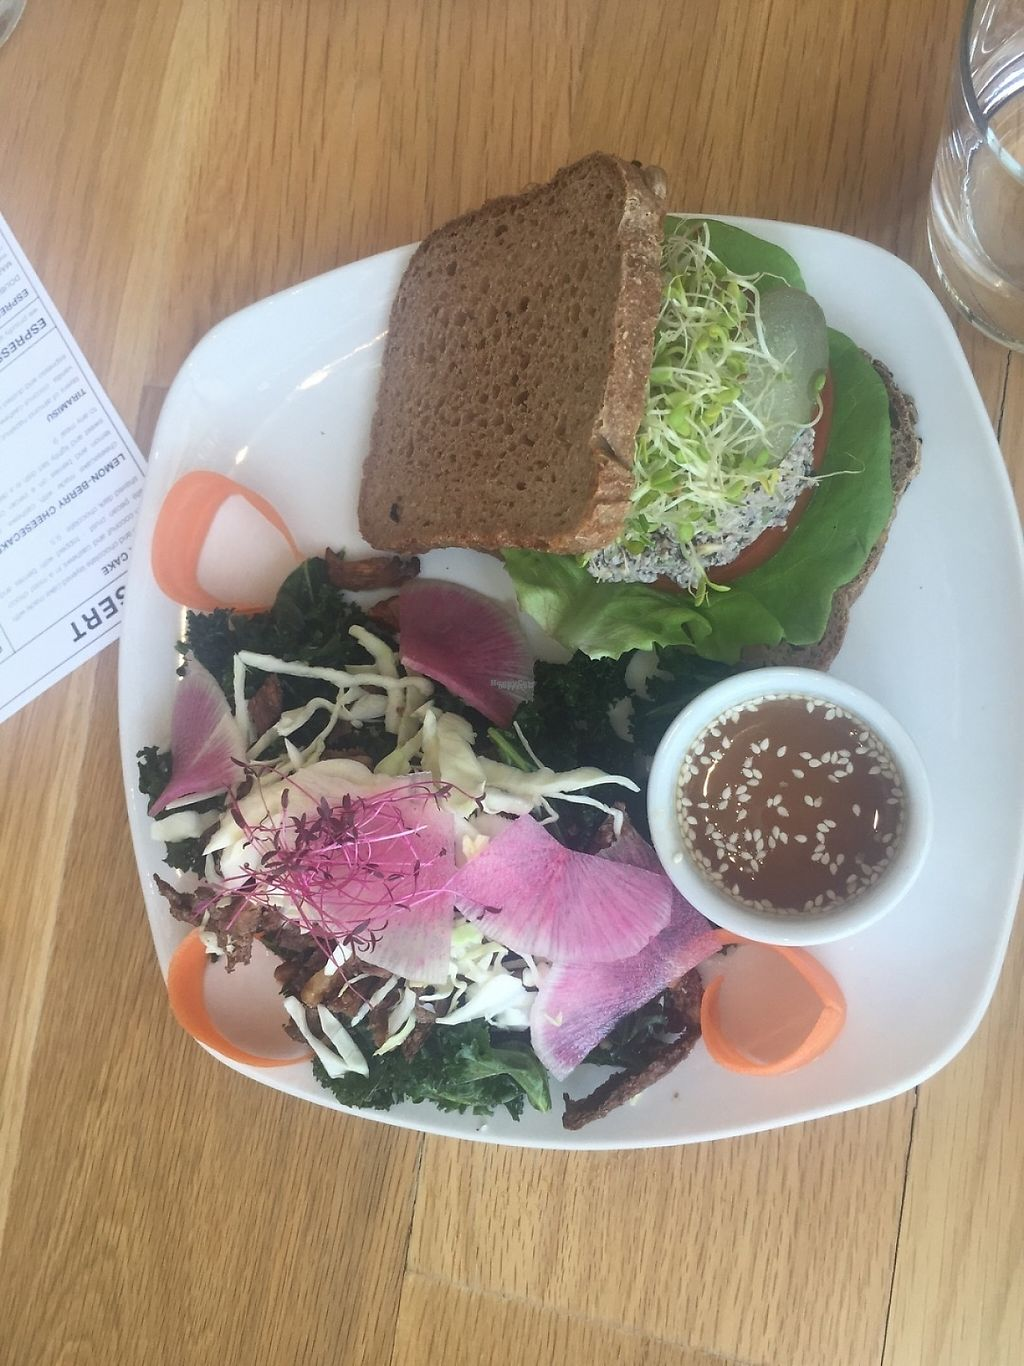 """Photo of Living Kitchen  by <a href=""""/members/profile/ginliv"""">ginliv</a> <br/>Mock tuna on multigrain with kale and oyster mushroom salad <br/> April 22, 2017  - <a href='/contact/abuse/image/78100/250819'>Report</a>"""